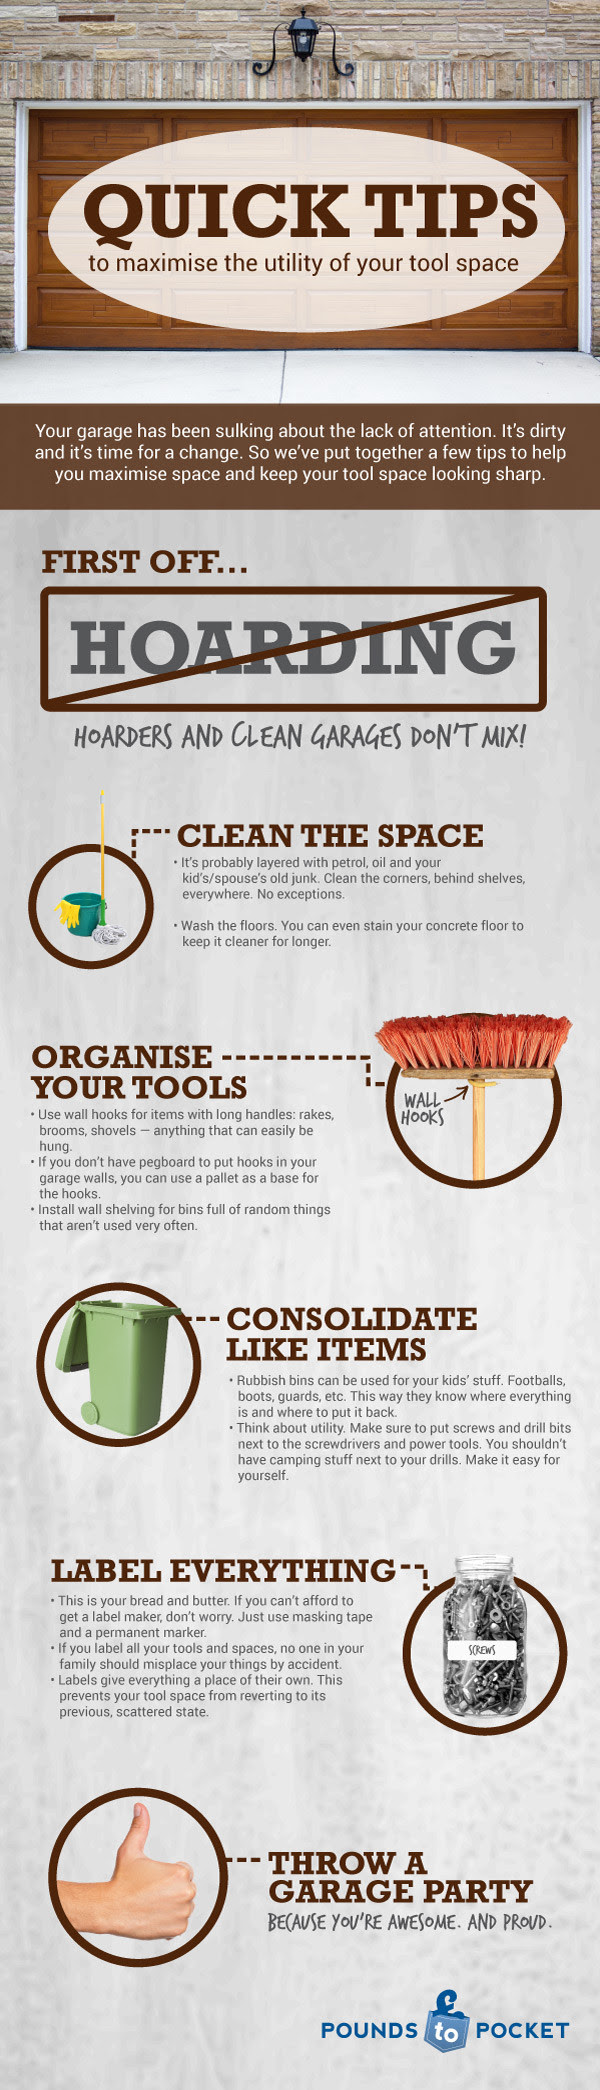 Infographic: Quick Tips to Maximize the Utility of your Tool Space